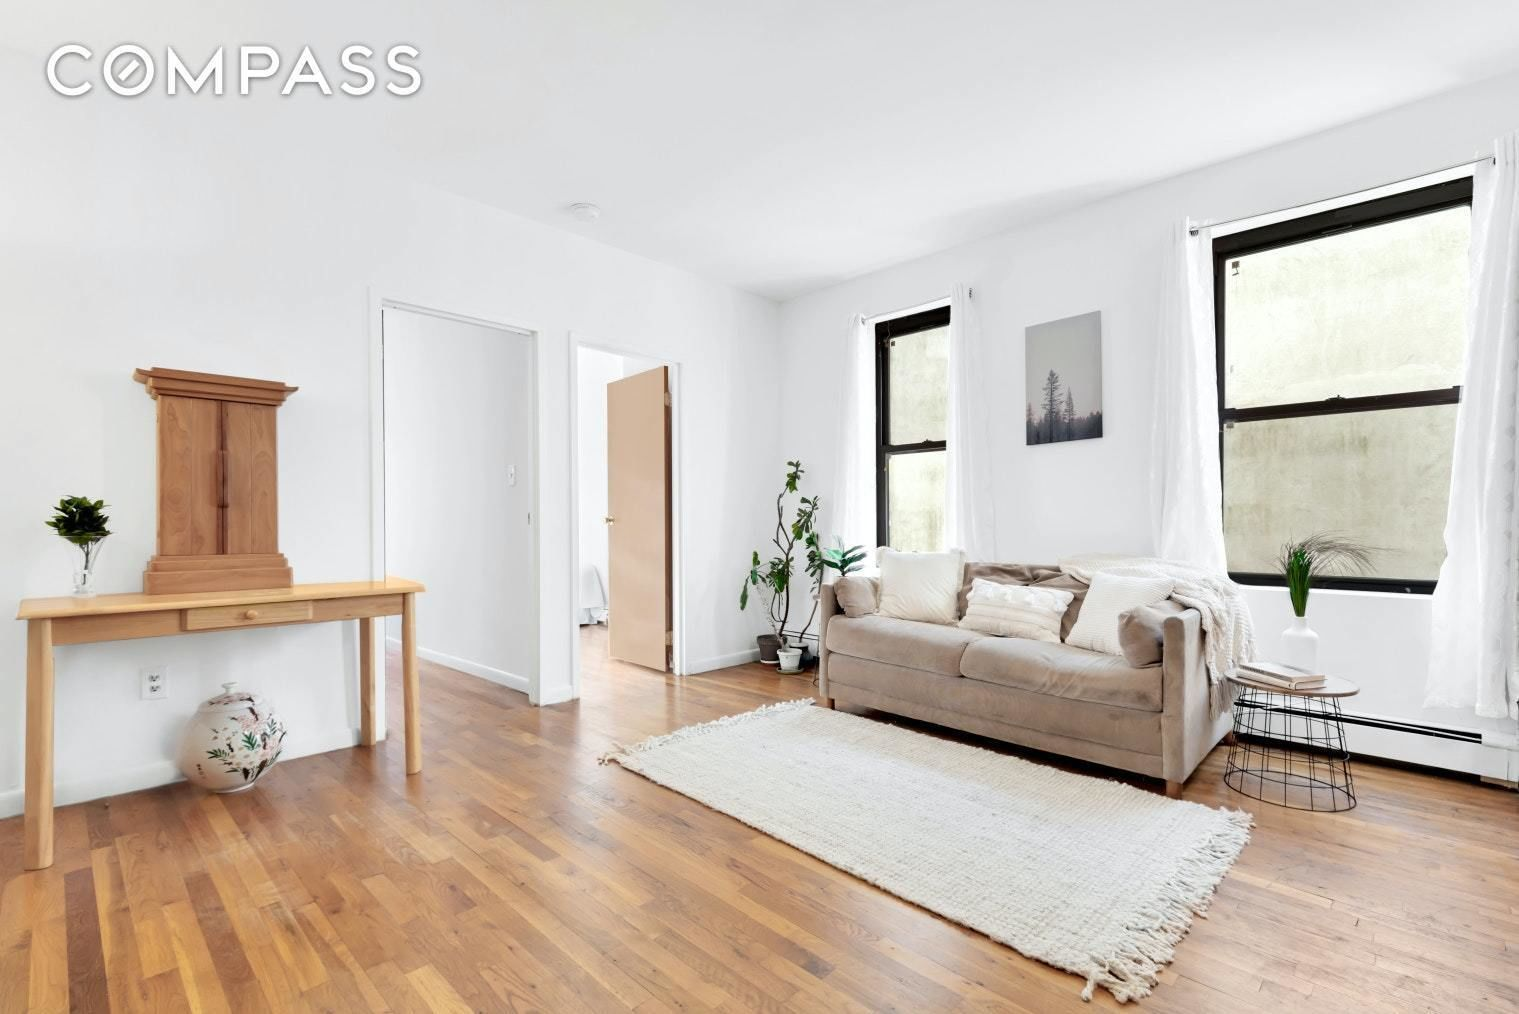 Apartment for sale at 299 13th Street, Apt 2-A